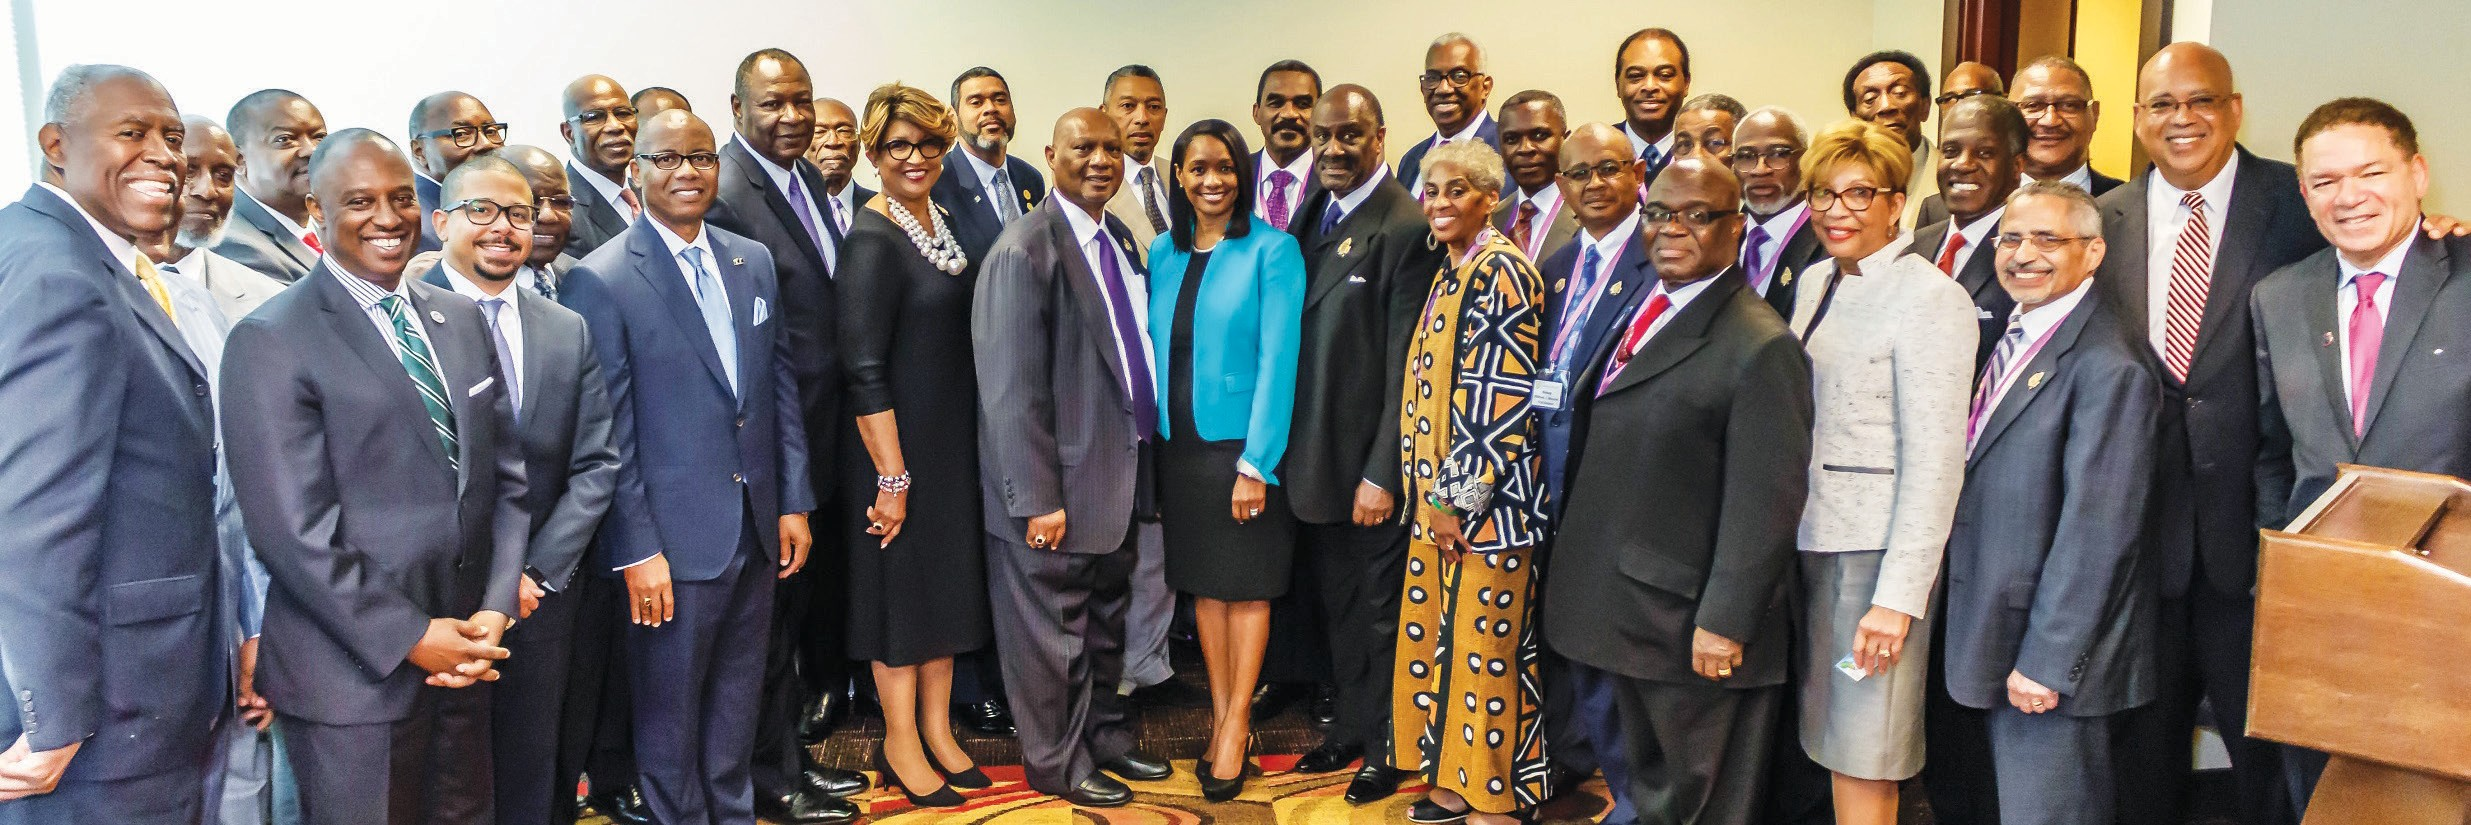 Ame church and black banks launch new partnership for black wealth the black church among the most prosperous institutions in america has long led movements for the spiritual social and civic uplift of black people malvernweather Images